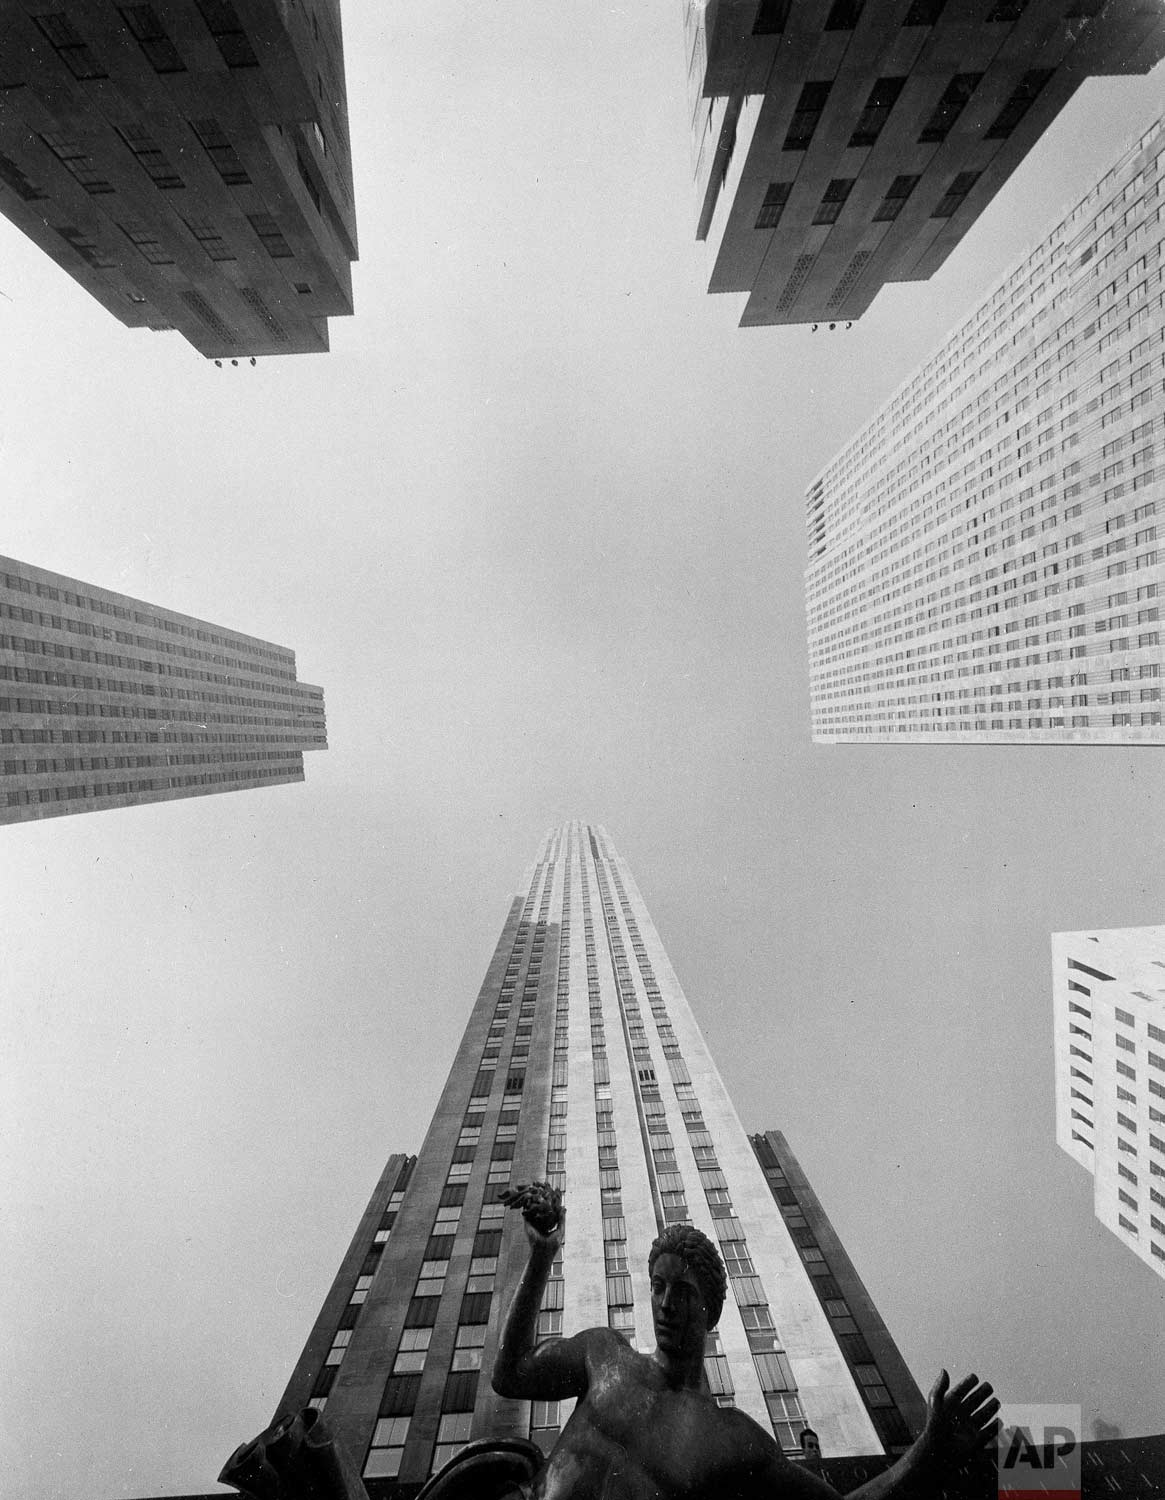 This unusual wide-angel view of New York's Rockefeller Center looks like a photo montage in 1939, but is really a single shot taken from just below the statue of Prometheus. The camera was pointed straight up, taking in 110 degree of sky, building and statue. Just above Prometheus is the RCA building. In clock-wise order come the Time and Life Building, La Maison Francaise, the British Empire Building, the International Building and the Associated Press Building. (AP Photo)